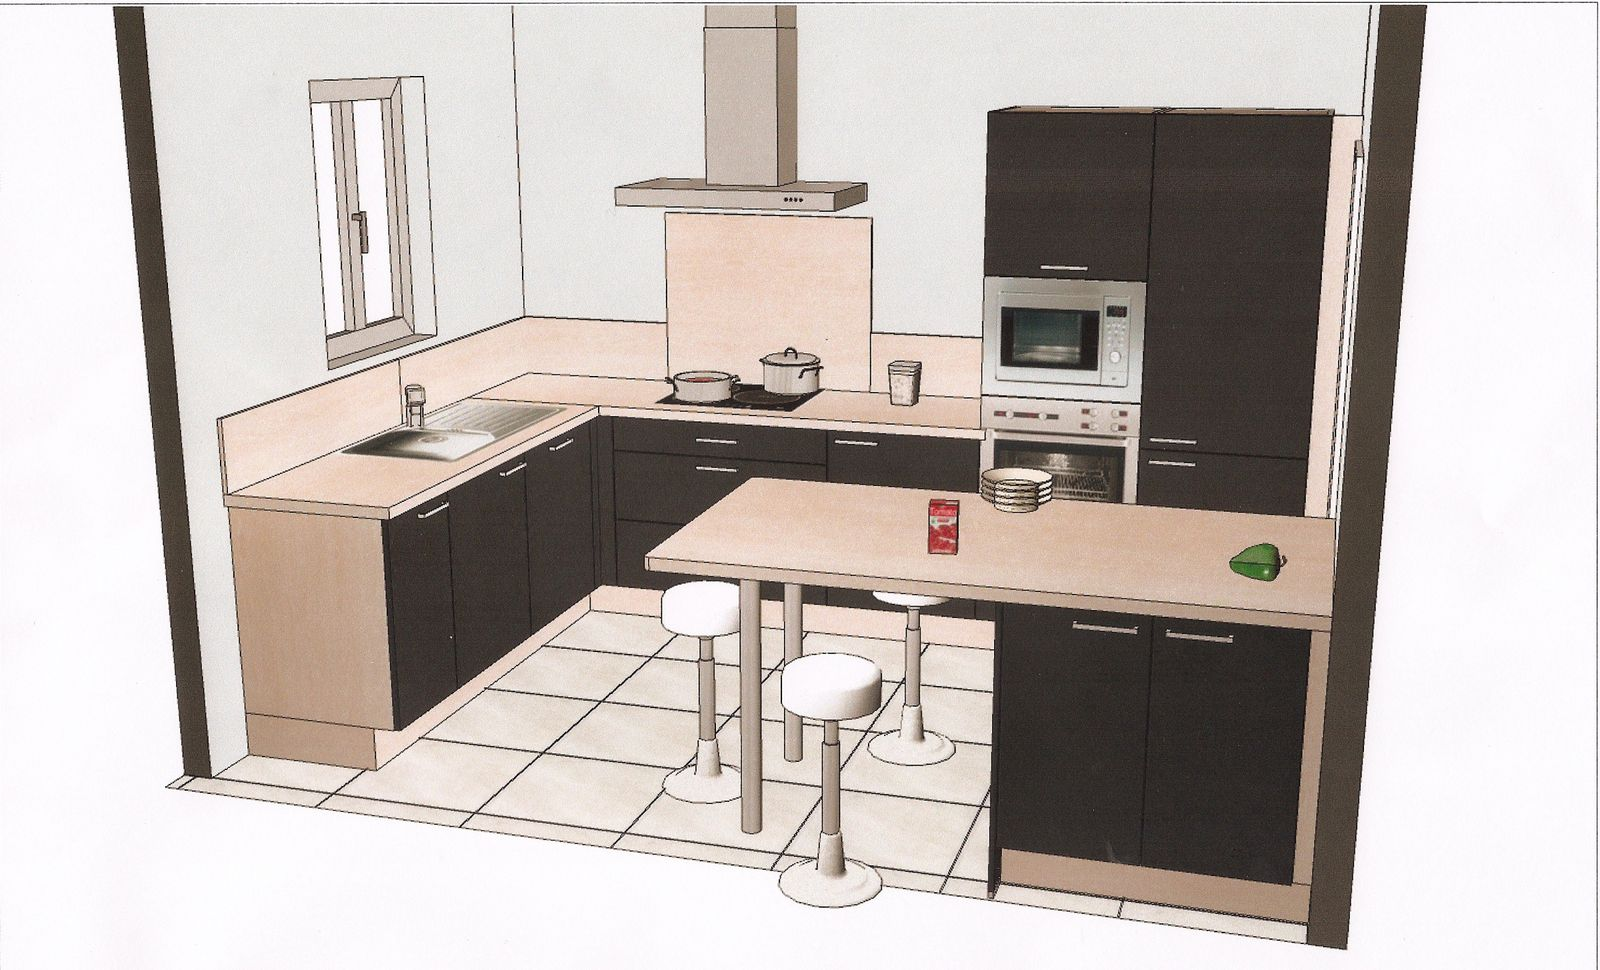 Plan petite cuisine amenagee maison design for Idee de plan de cuisine amenagee